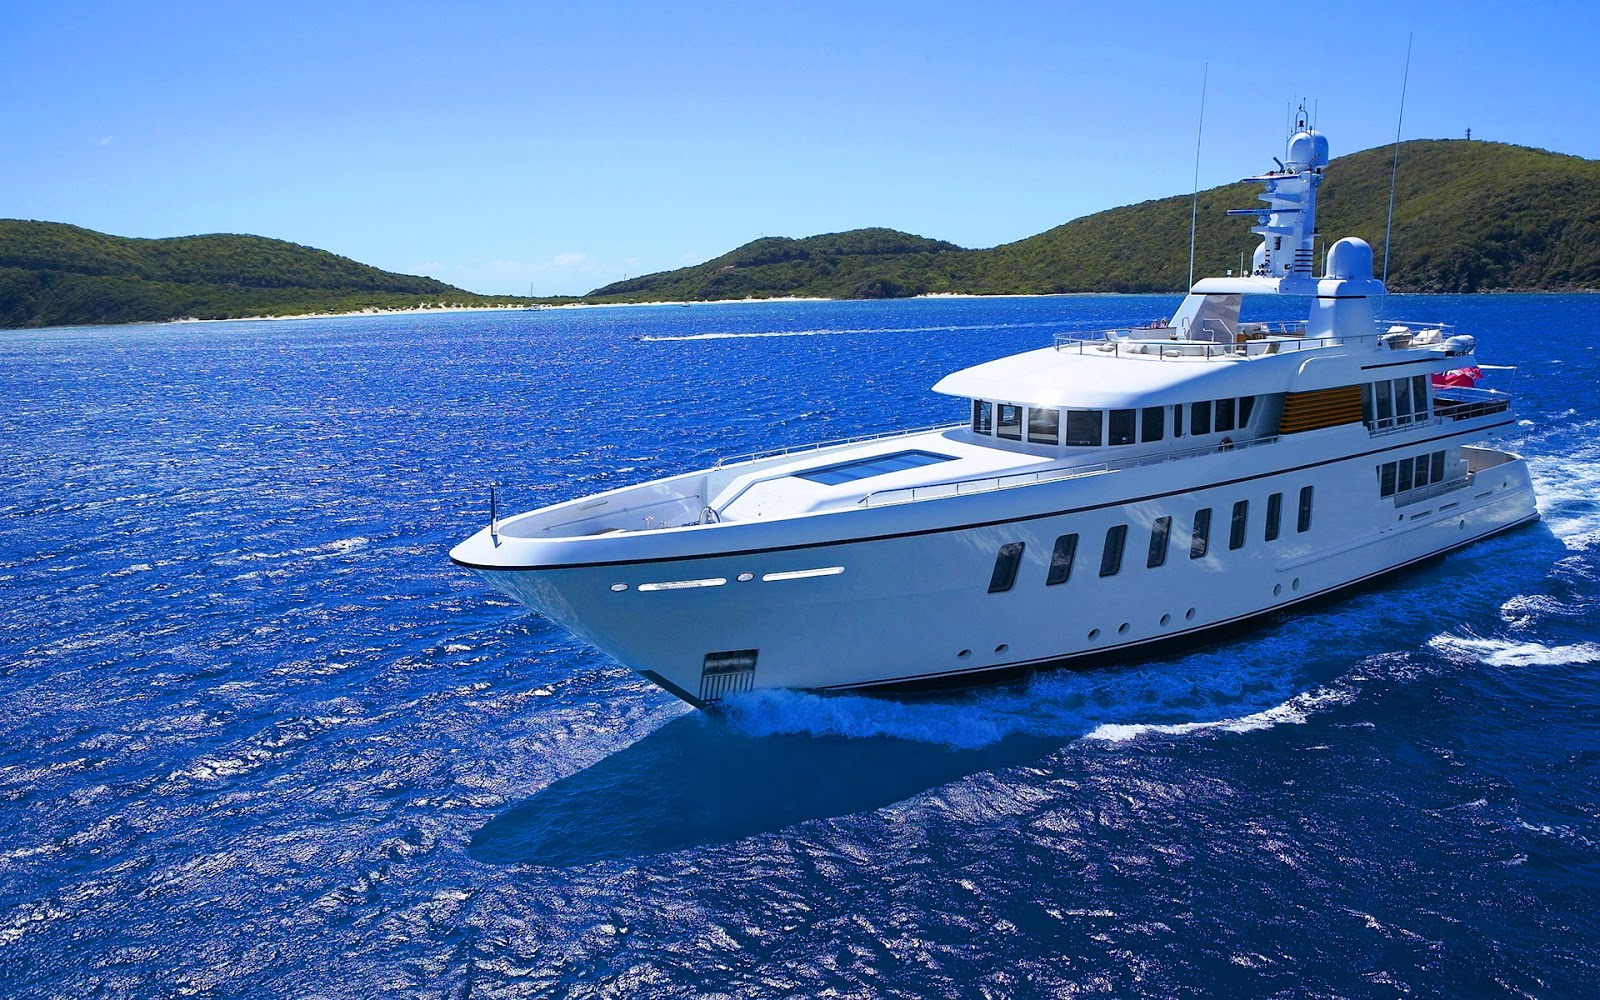 Yacht Pictures Luxury Private Yachts Mega Yacht Full HD 1600x1000